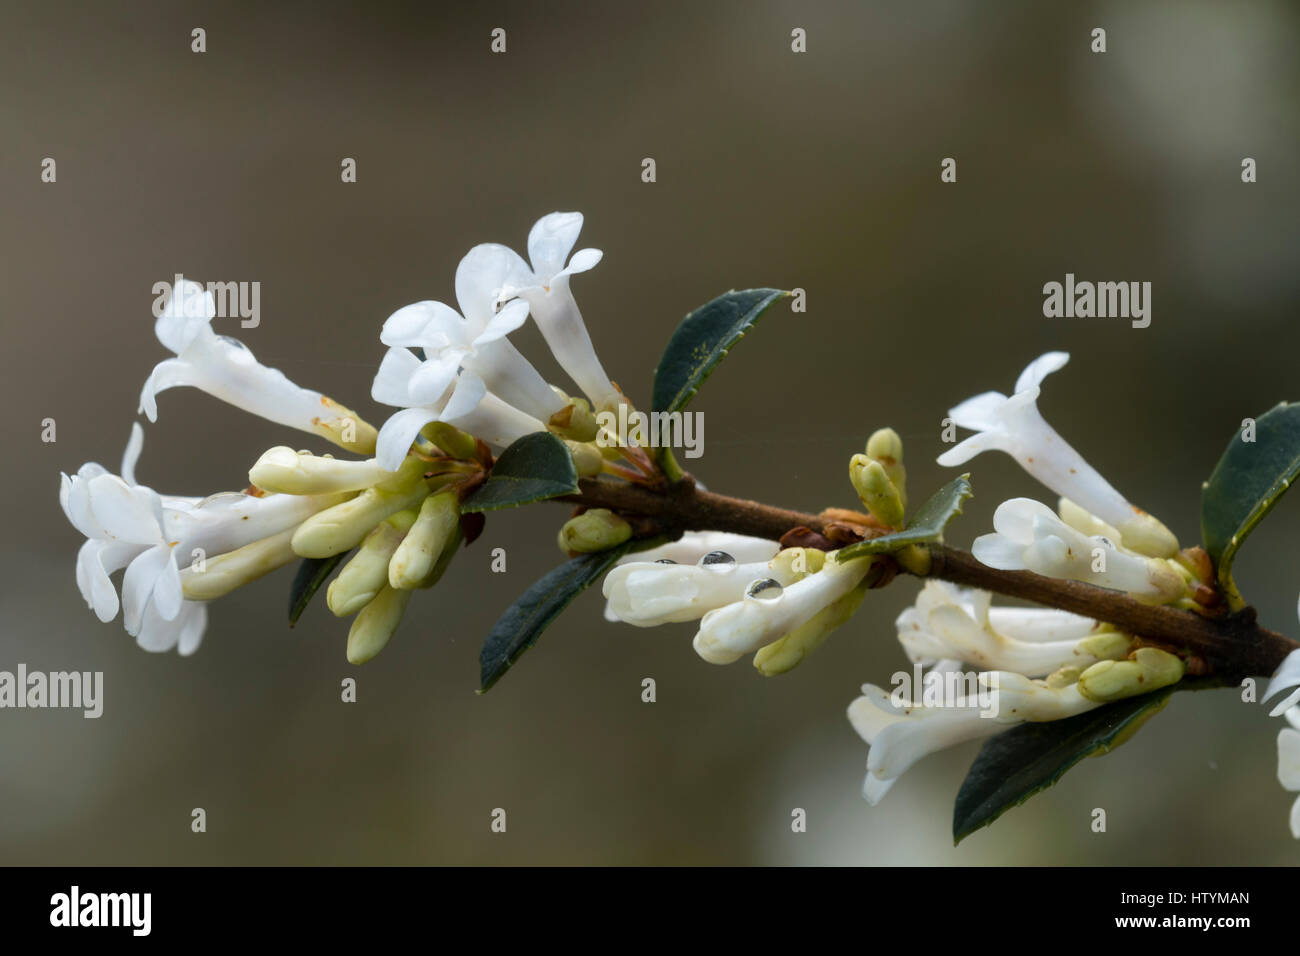 Fragrant White Spring Flowers Adorn The Drooping Branches Of The